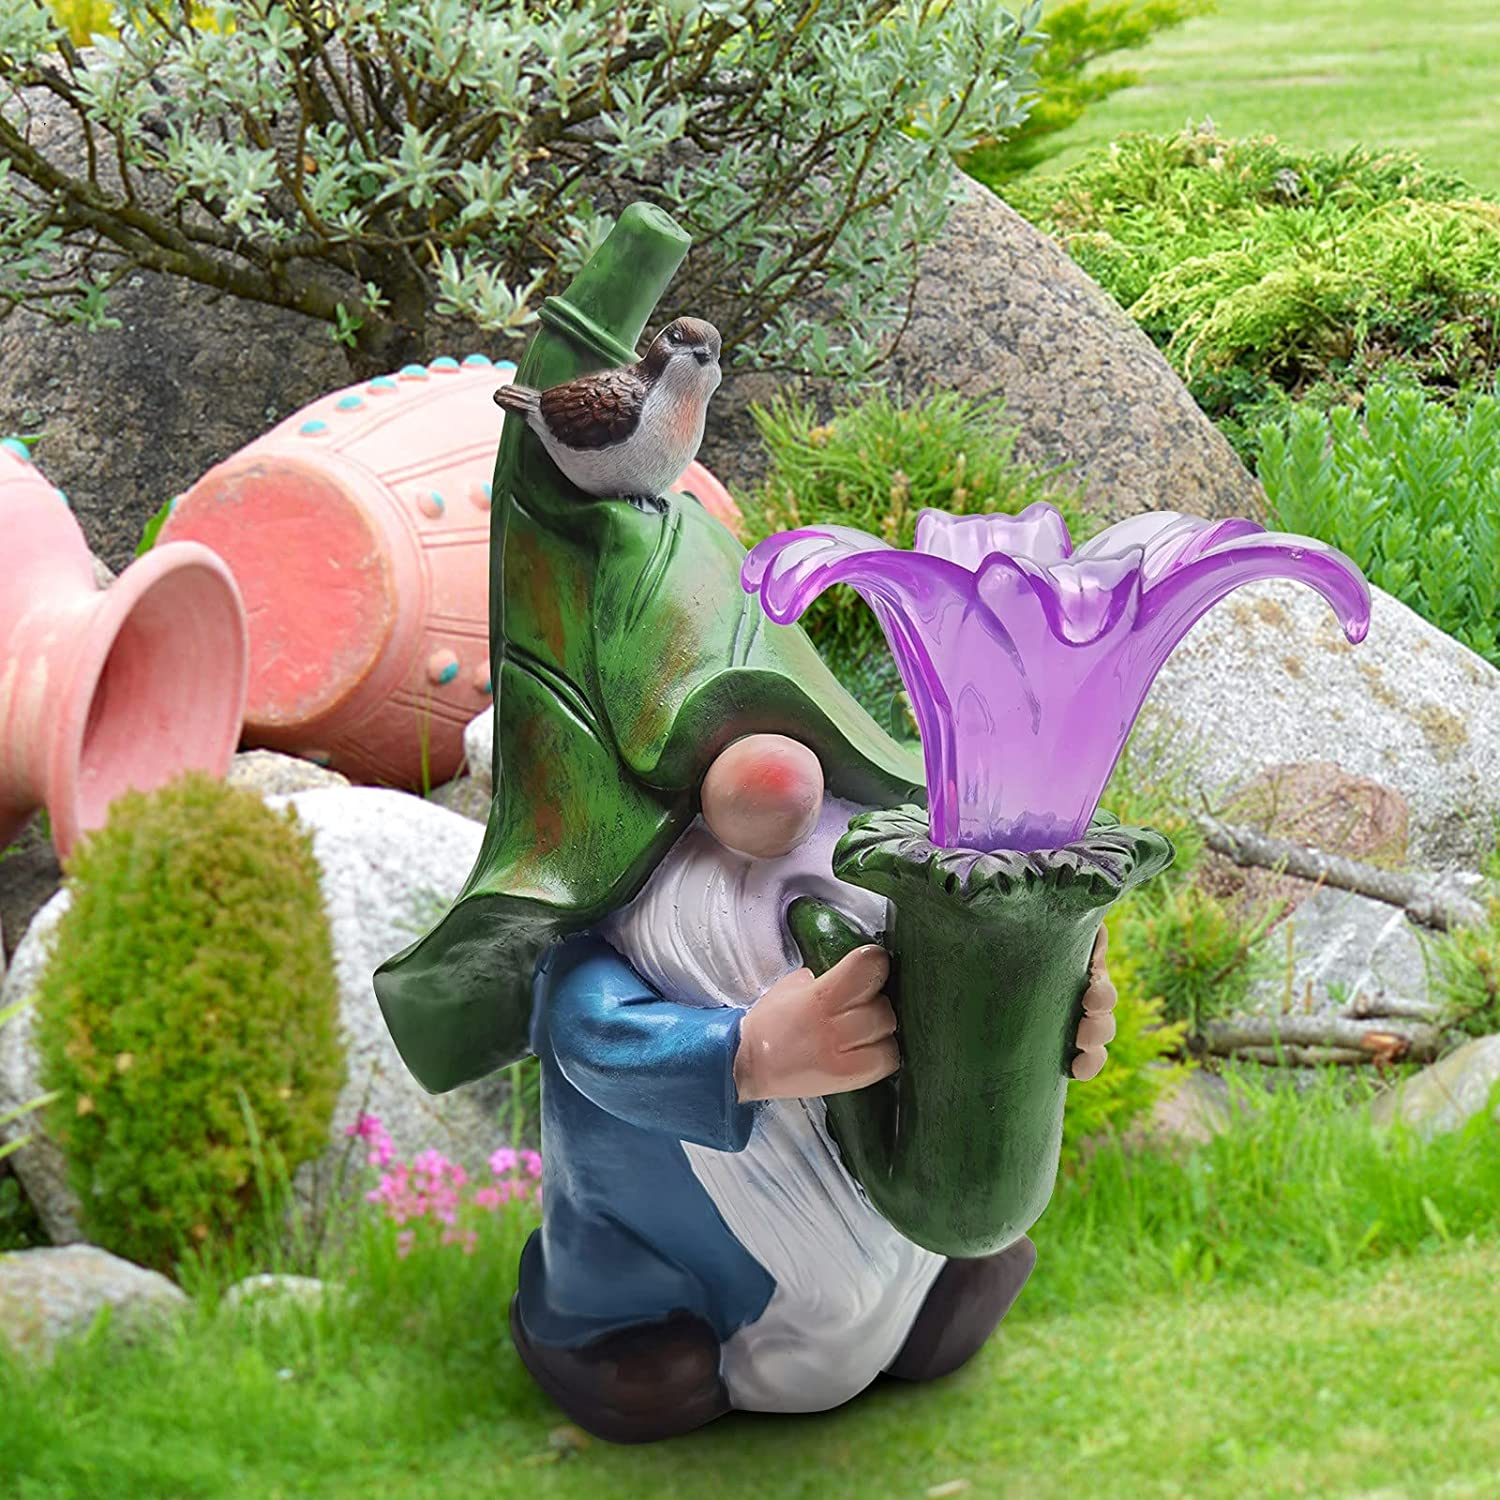 Resin Garden Dwarf Ranking Mail order cheap TOP7 Statue 2021 Gnome Newest Figurine The Carryi